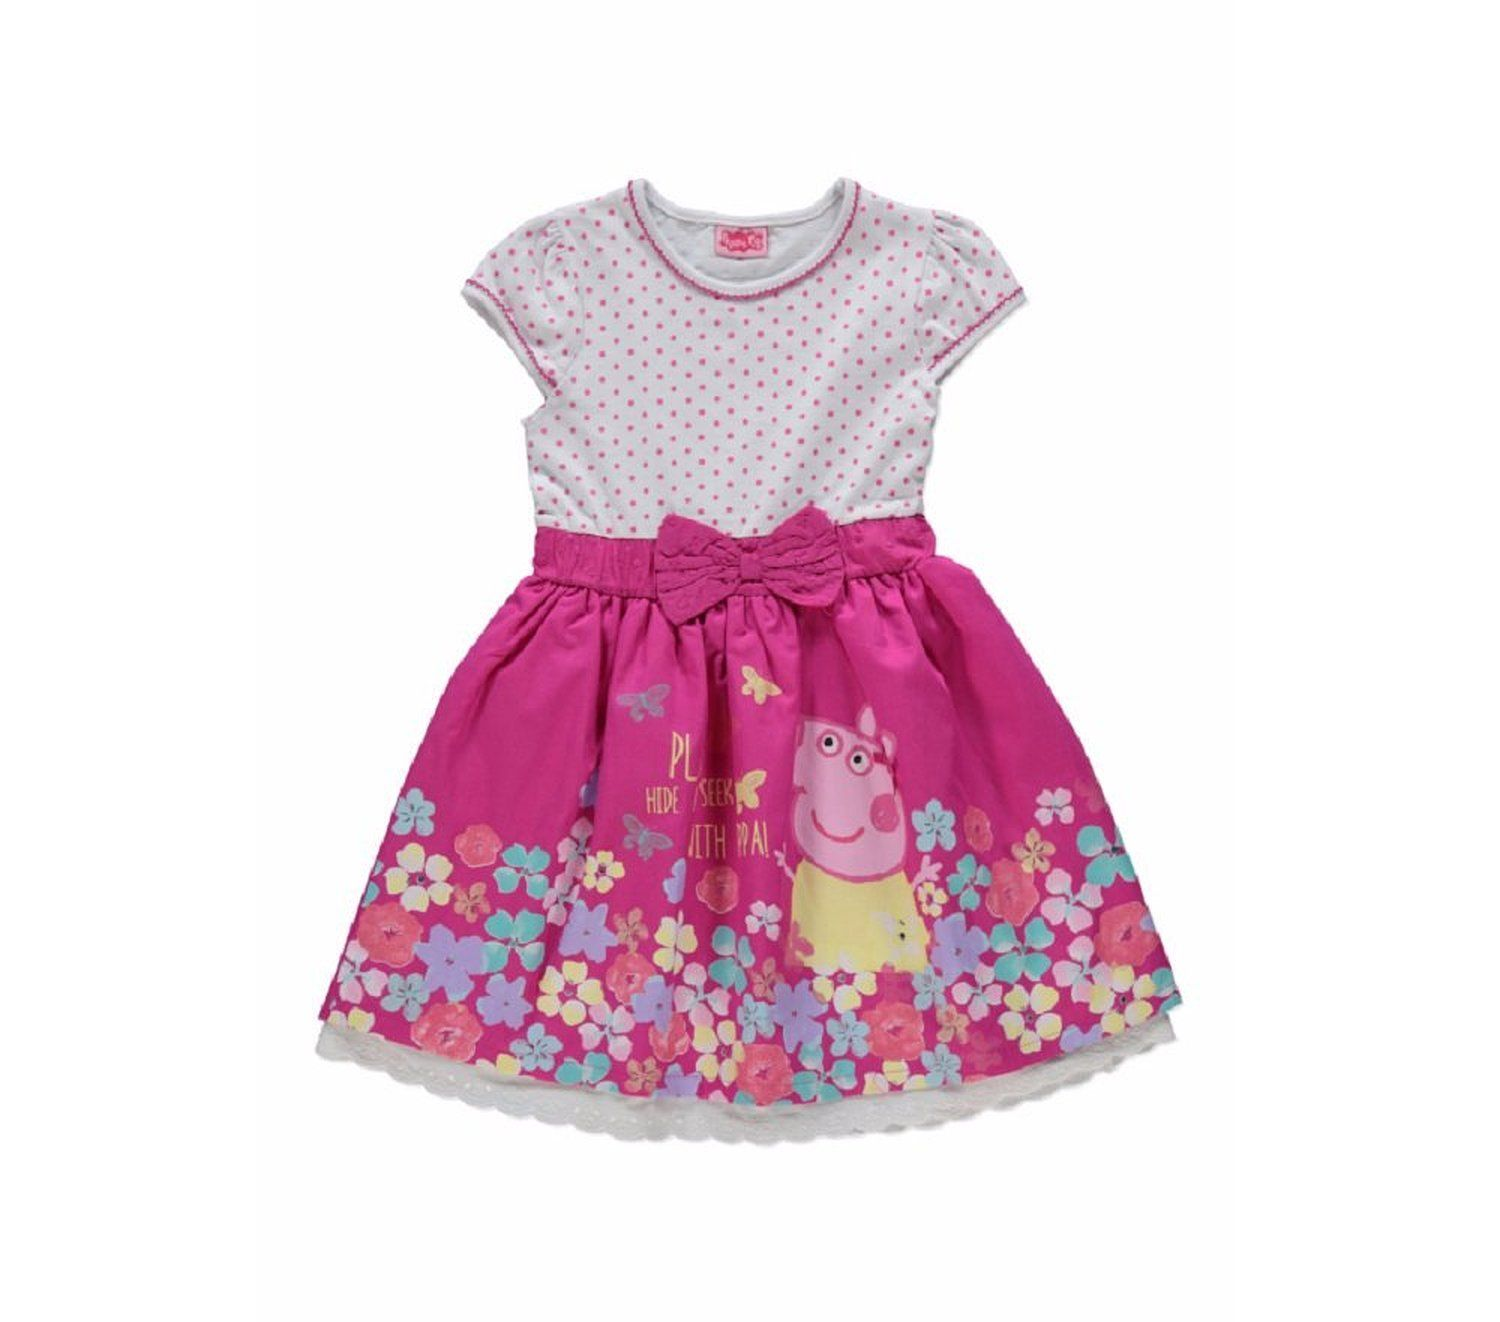 peppa pig clothing - Google Search | next sukienka | Pinterest